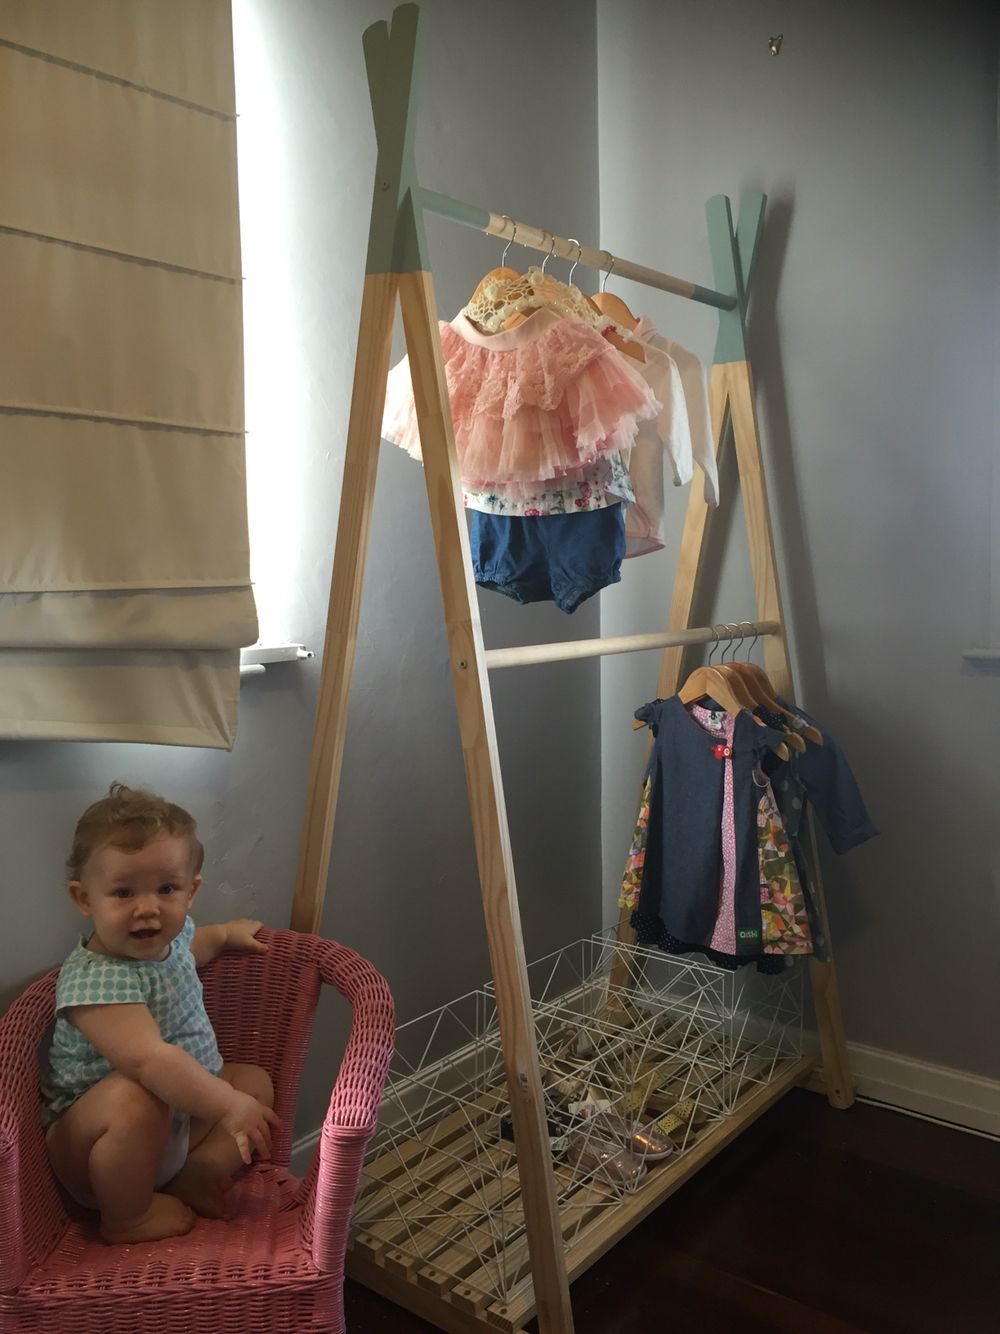 Scandistyle teepee clothes rack. Homemade. Annie Sloane